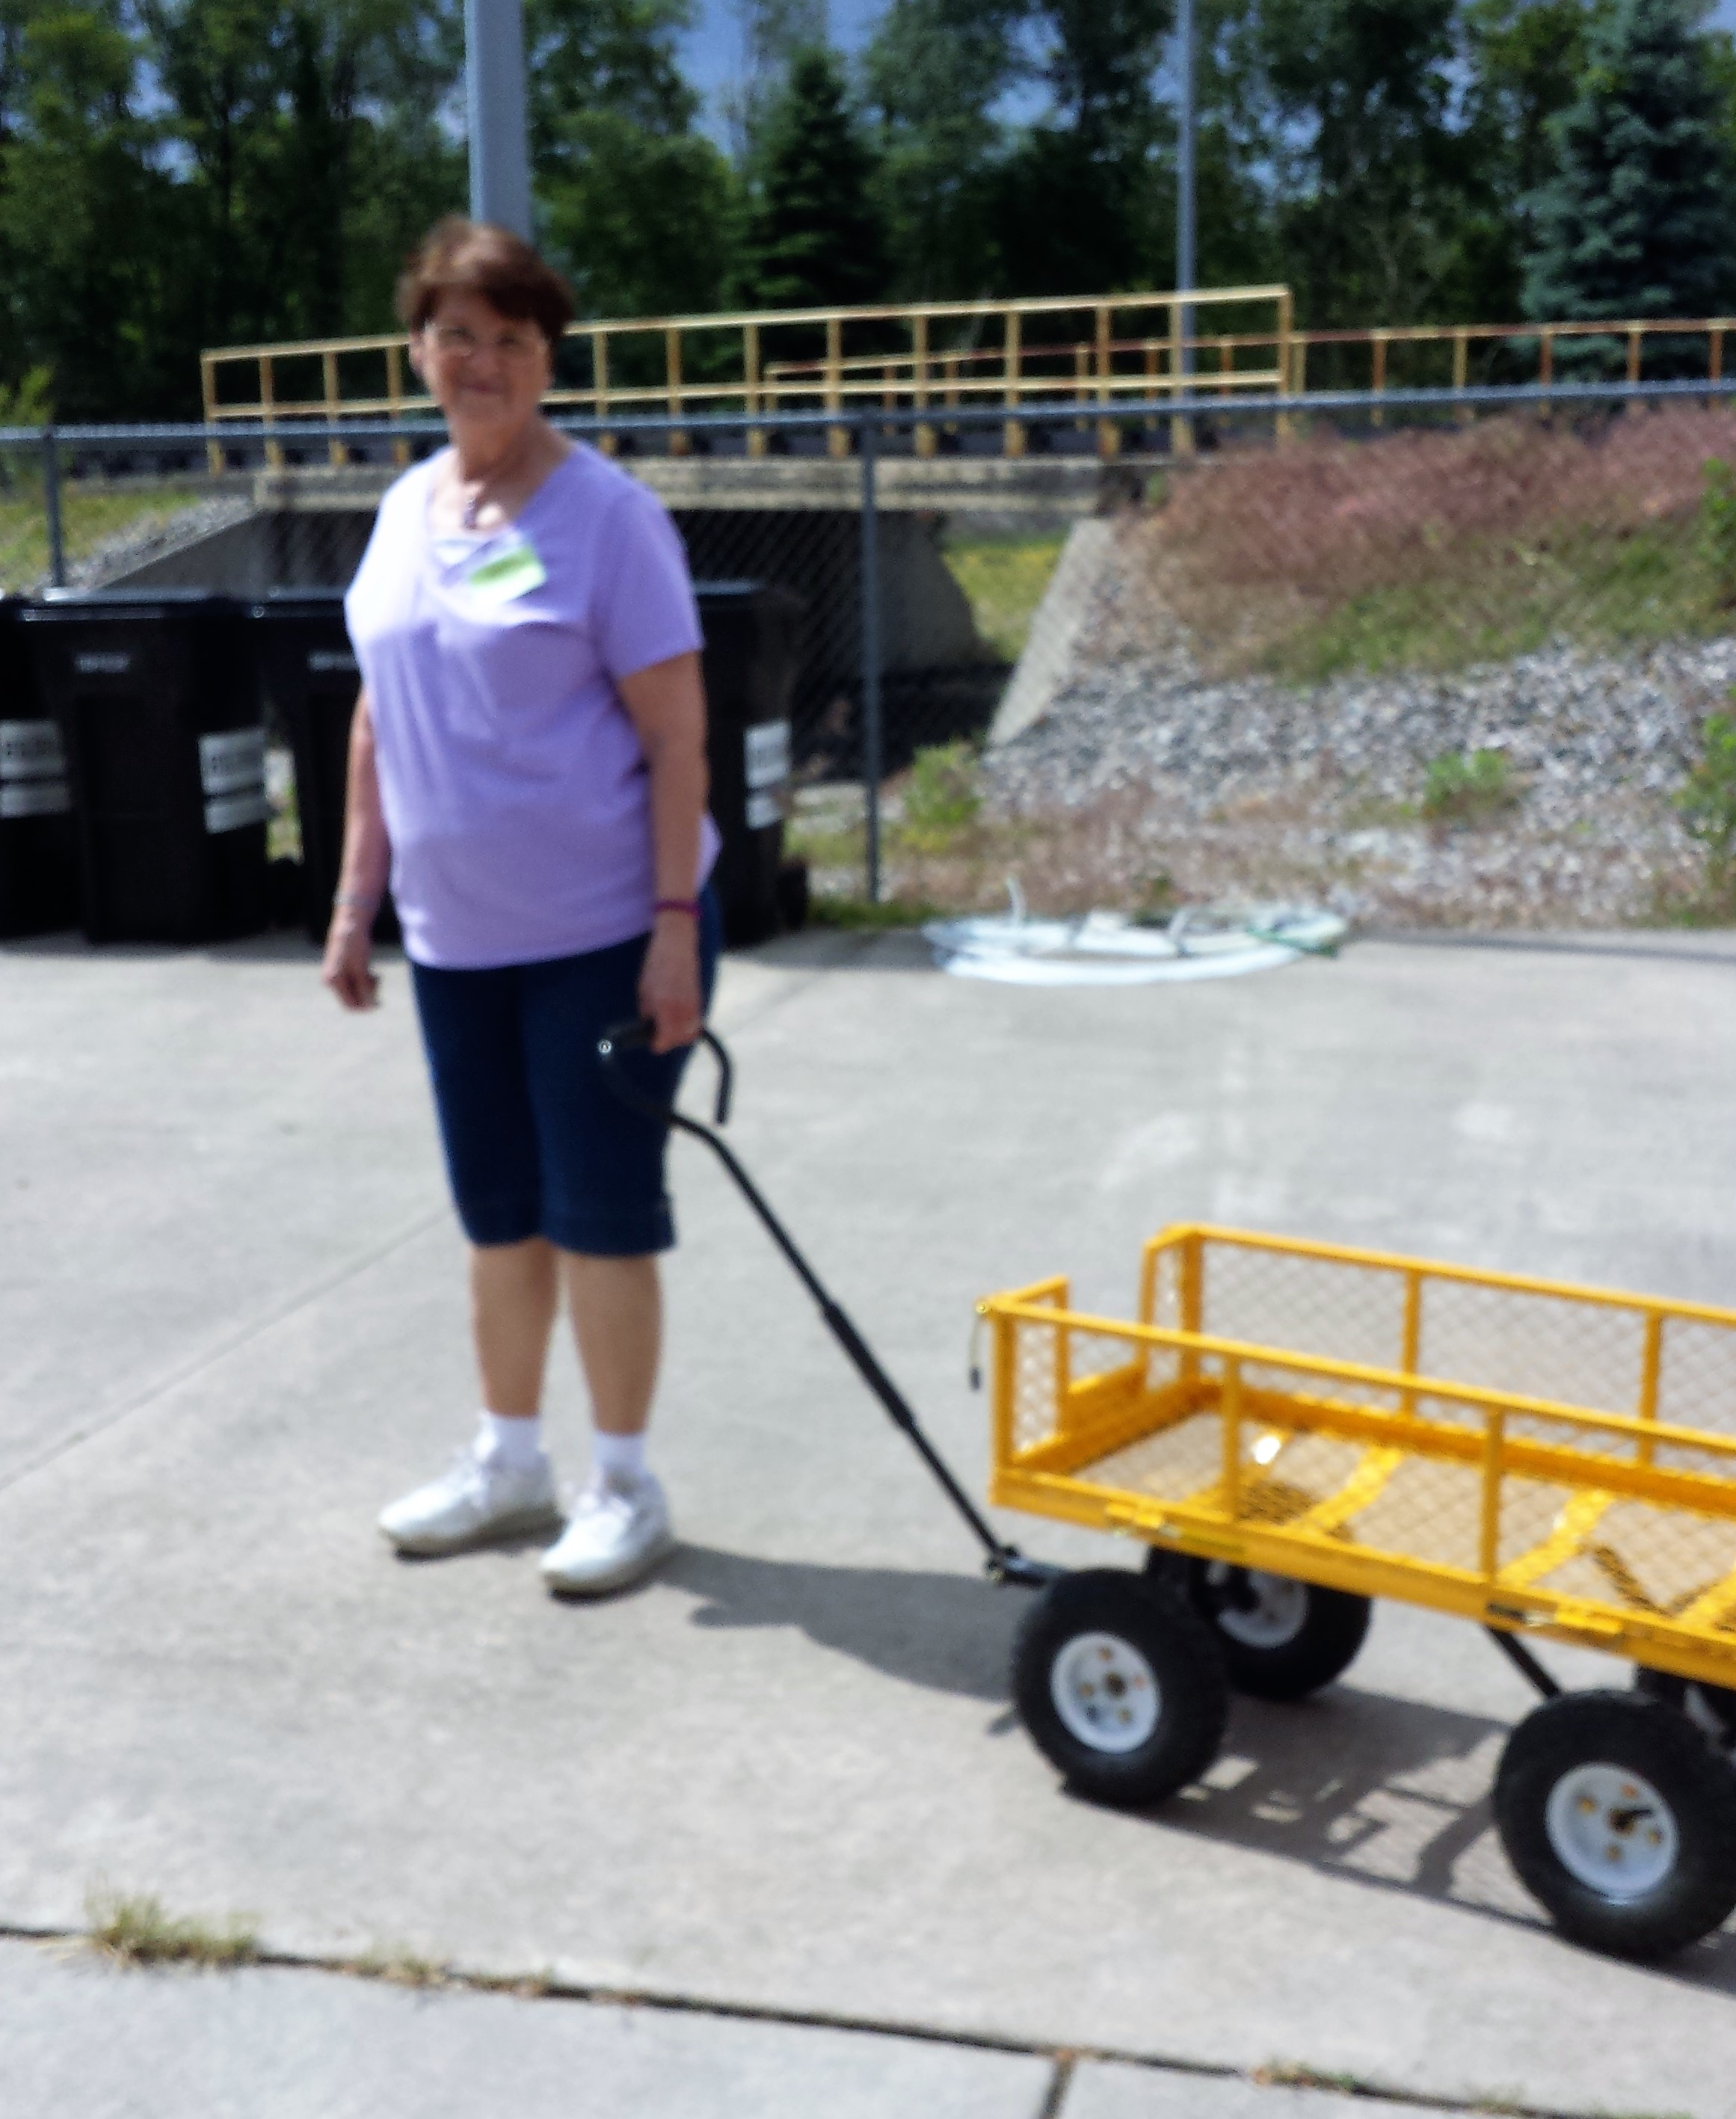 Volunteers use our Yellow Wagons to help move food from the Pantry to the cars.